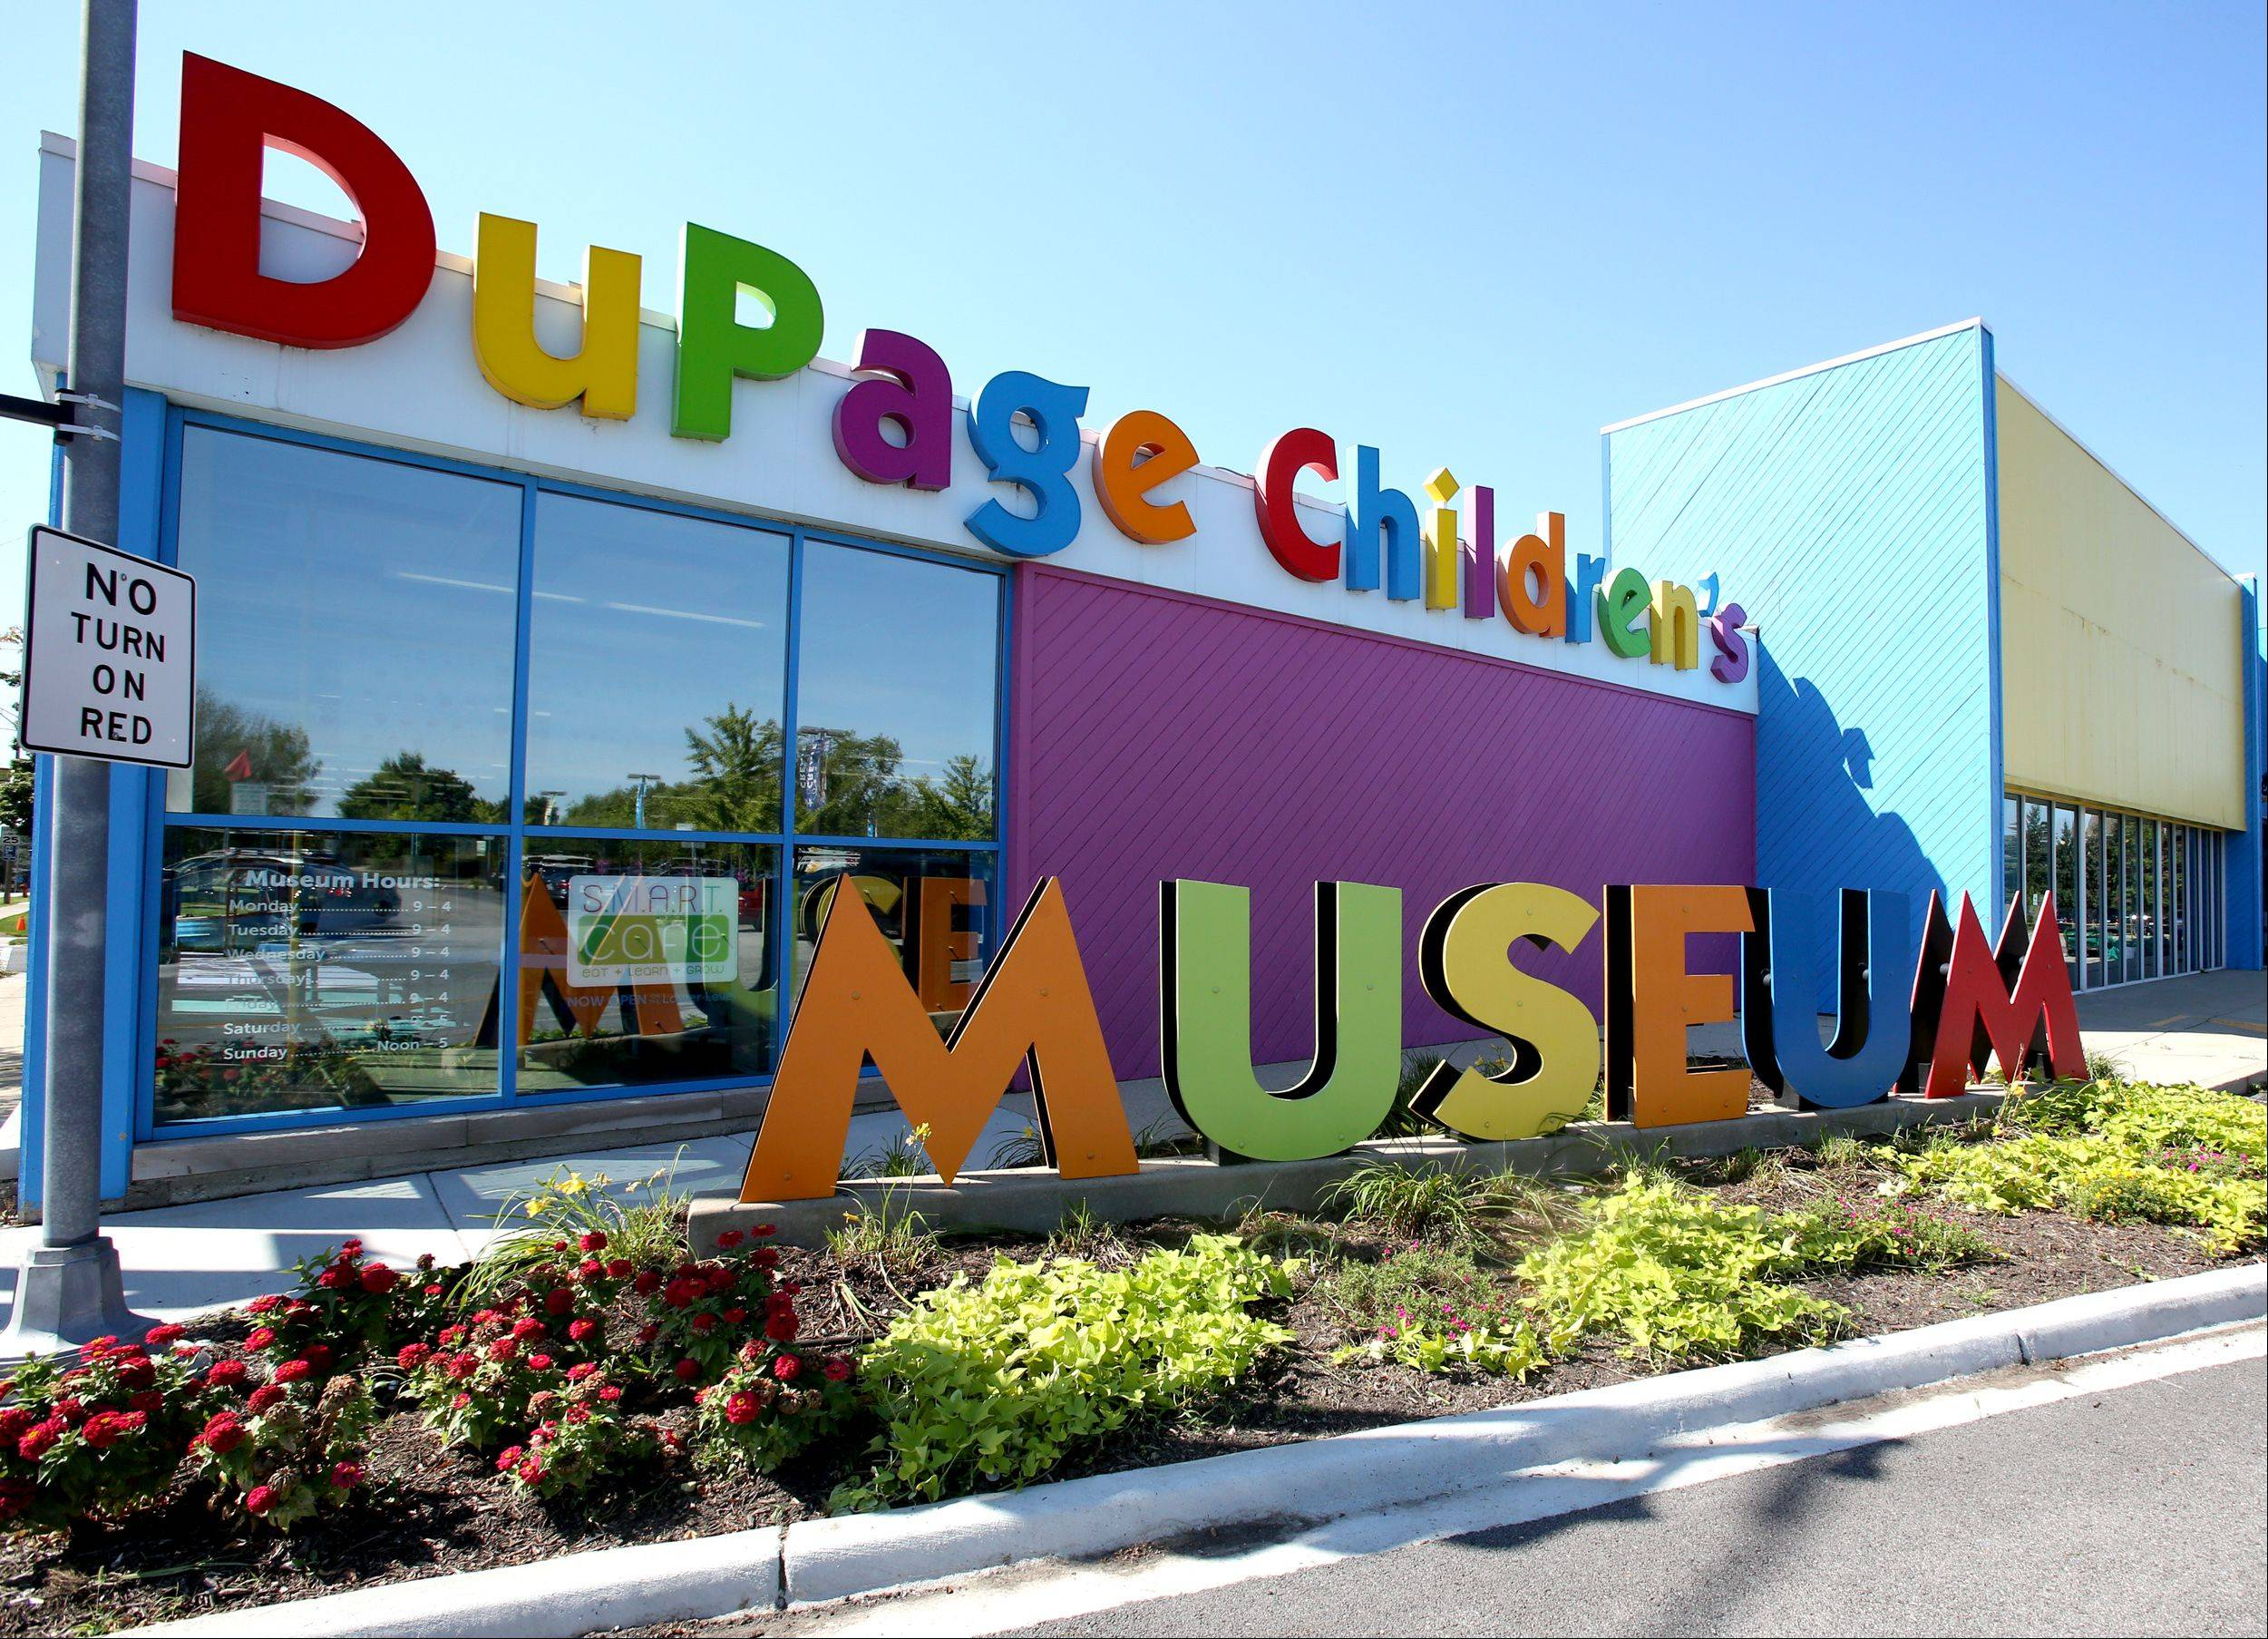 The DuPage Children's Museum has committed to clean up landscaping that had gone to weeds this summer. Cleanup began Tuesday while the museum is closed until Wednesday, Sept. 11 for its annual maintenance period.